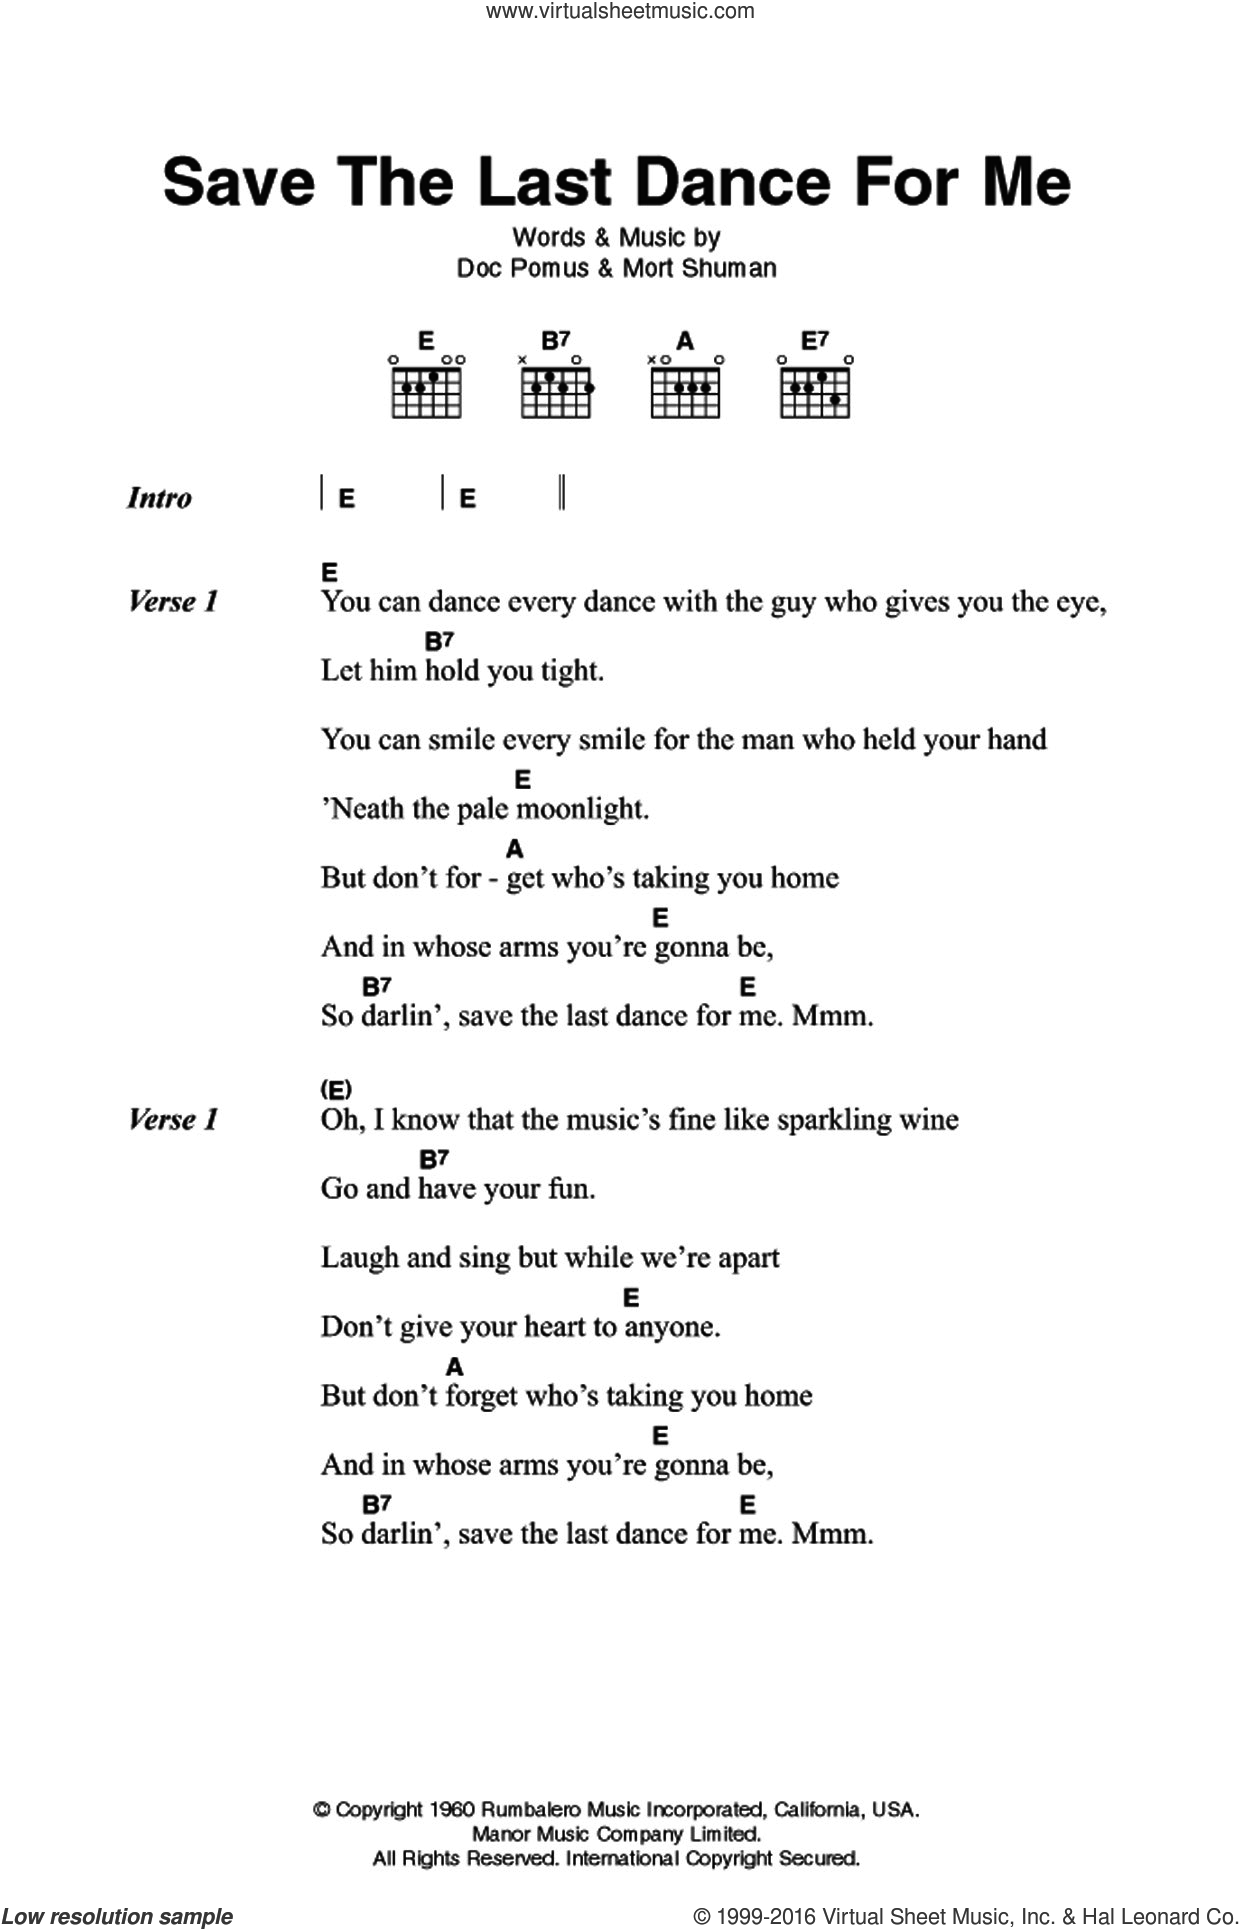 Save The Last Dance For Me sheet music for guitar (chords) by The Drifters, Doc Pomus and Mort Shuman, intermediate skill level